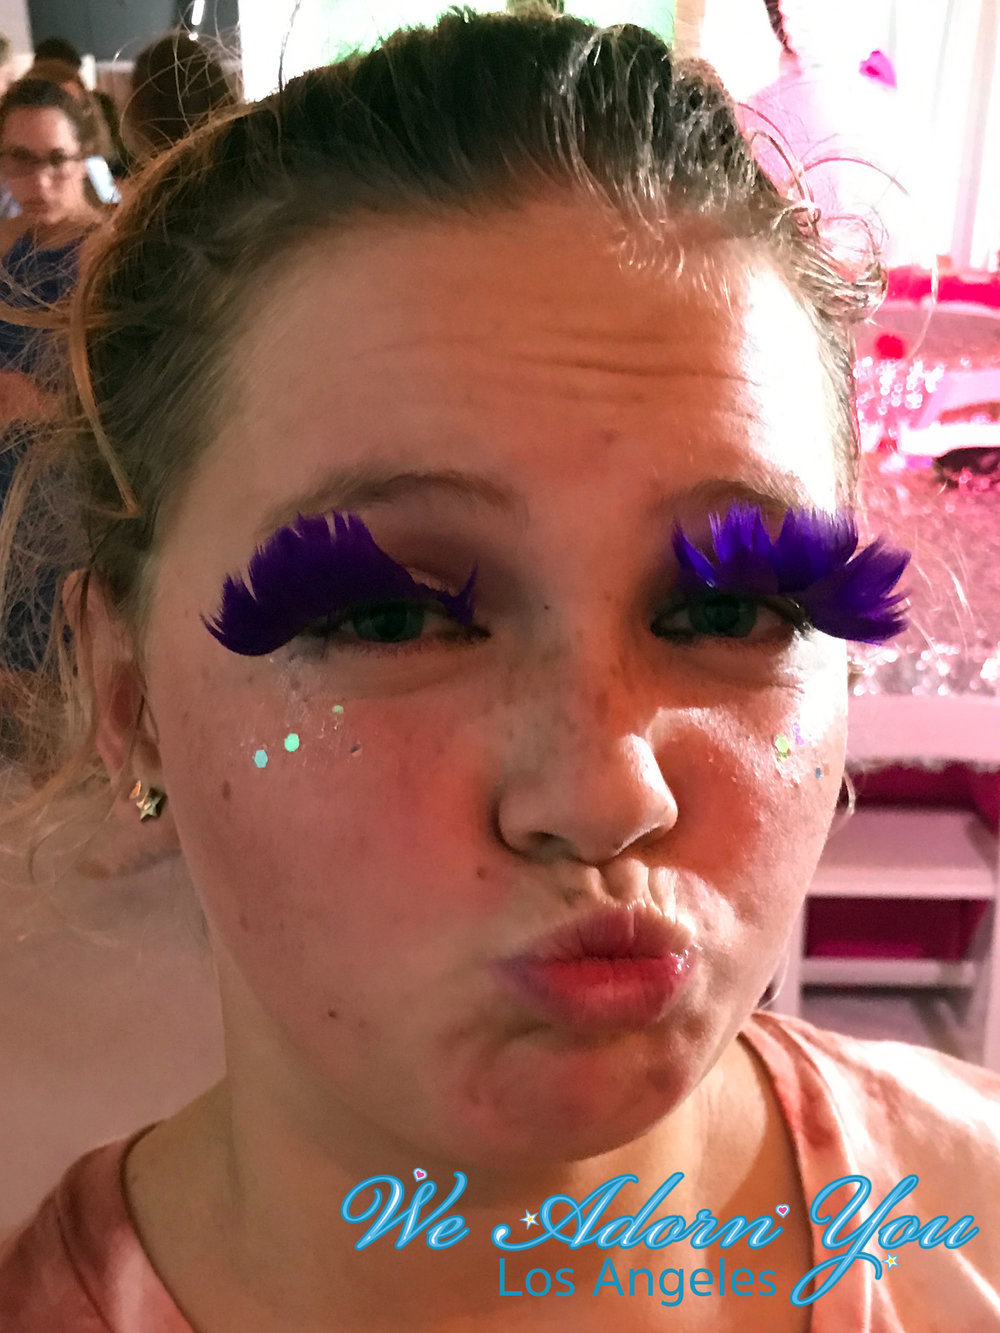 We Adorn You Los Angeles party eyelashes purple.jpg